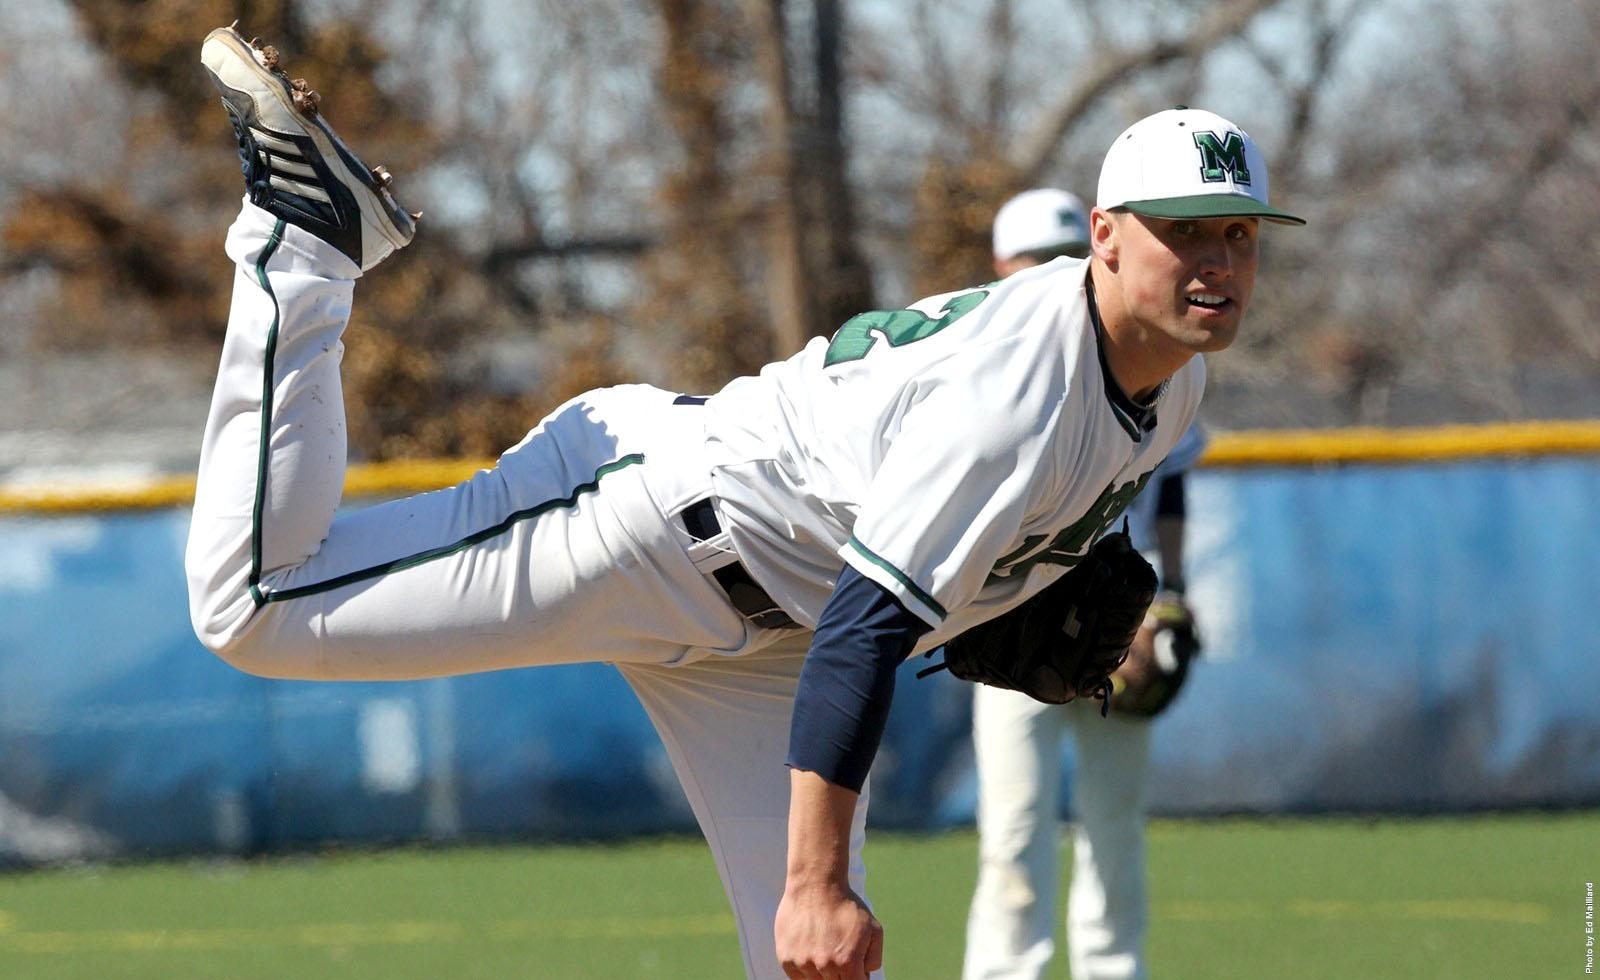 Dan Altavilla, former standout from Mercyhurst, got promoted by the Seattle Mariners to play in their A-team